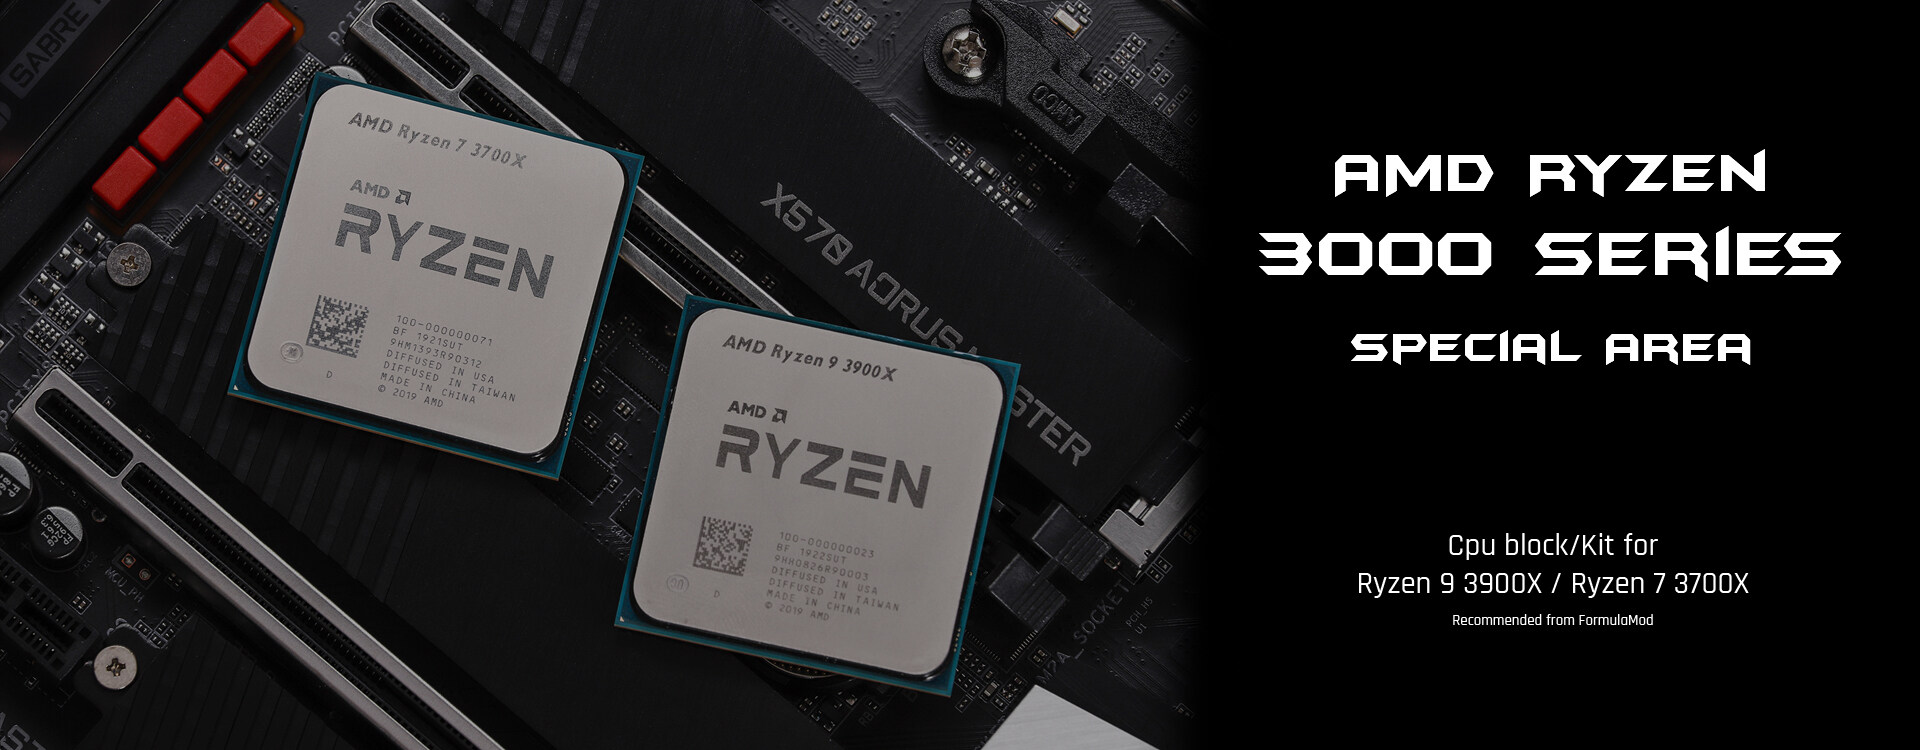 Recommended for Ryzen 3000 series